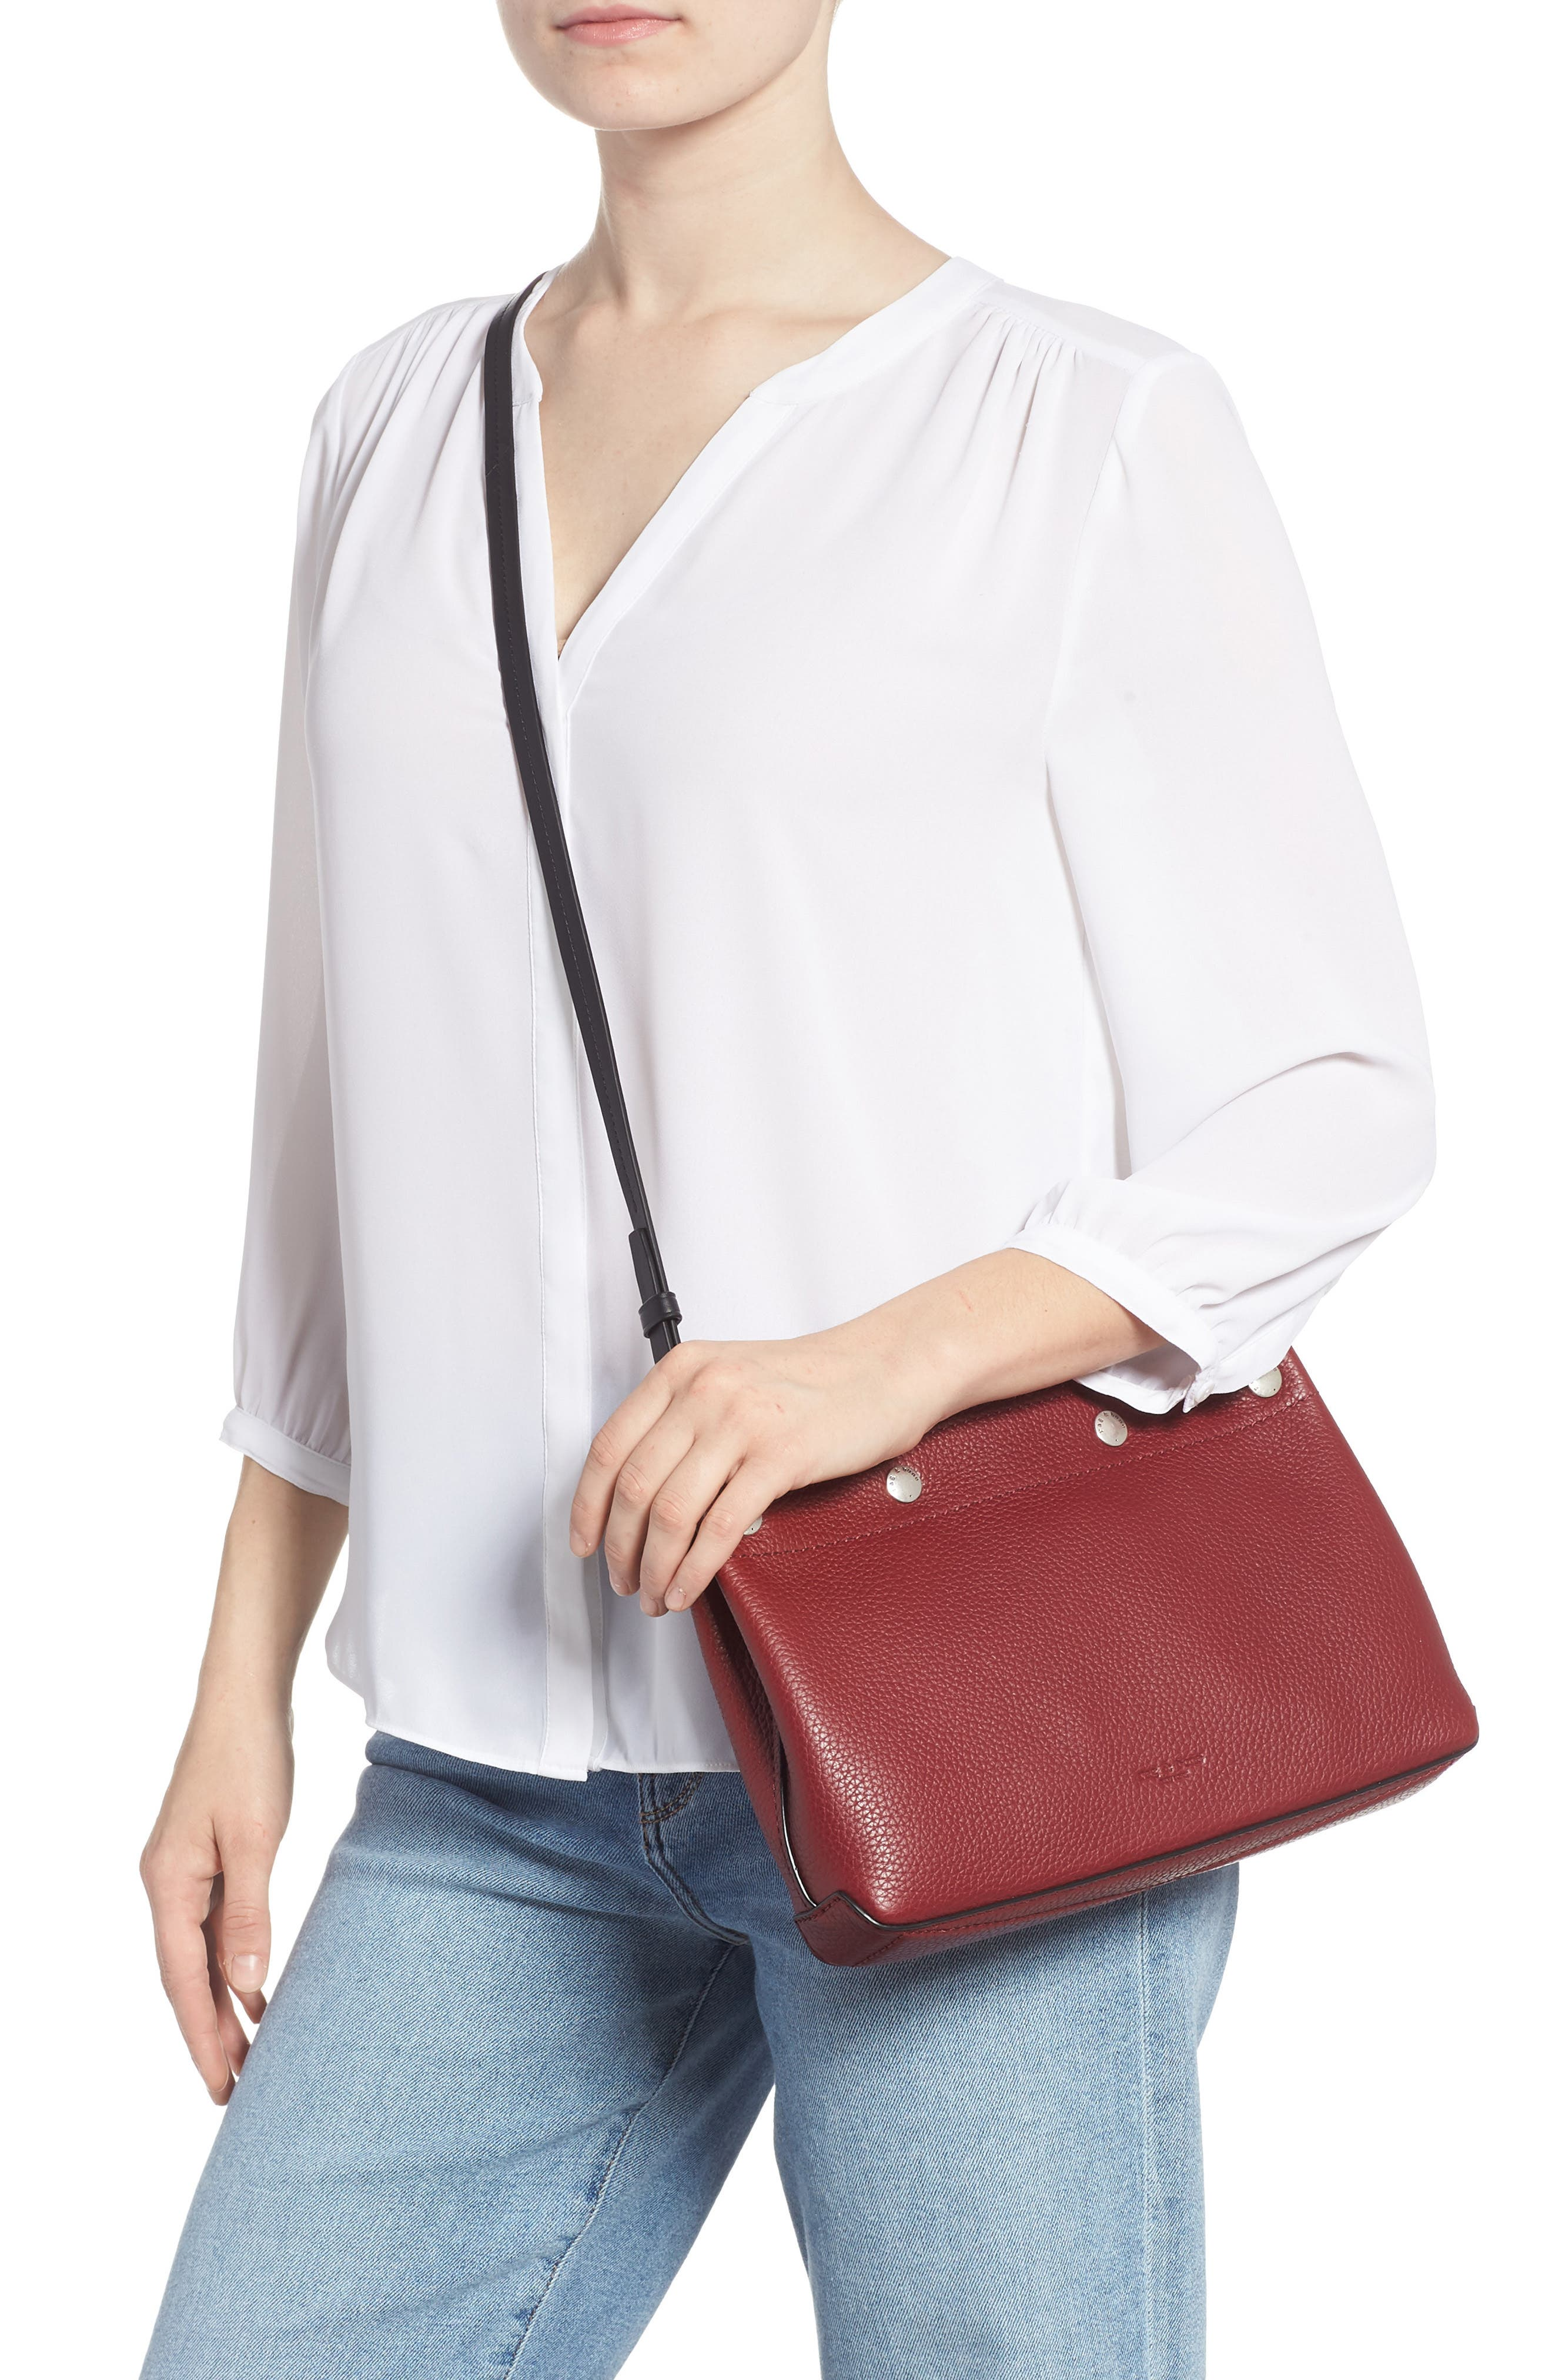 Compass Leather Crossbody Bag,                         Main,                         color, BIKING RED